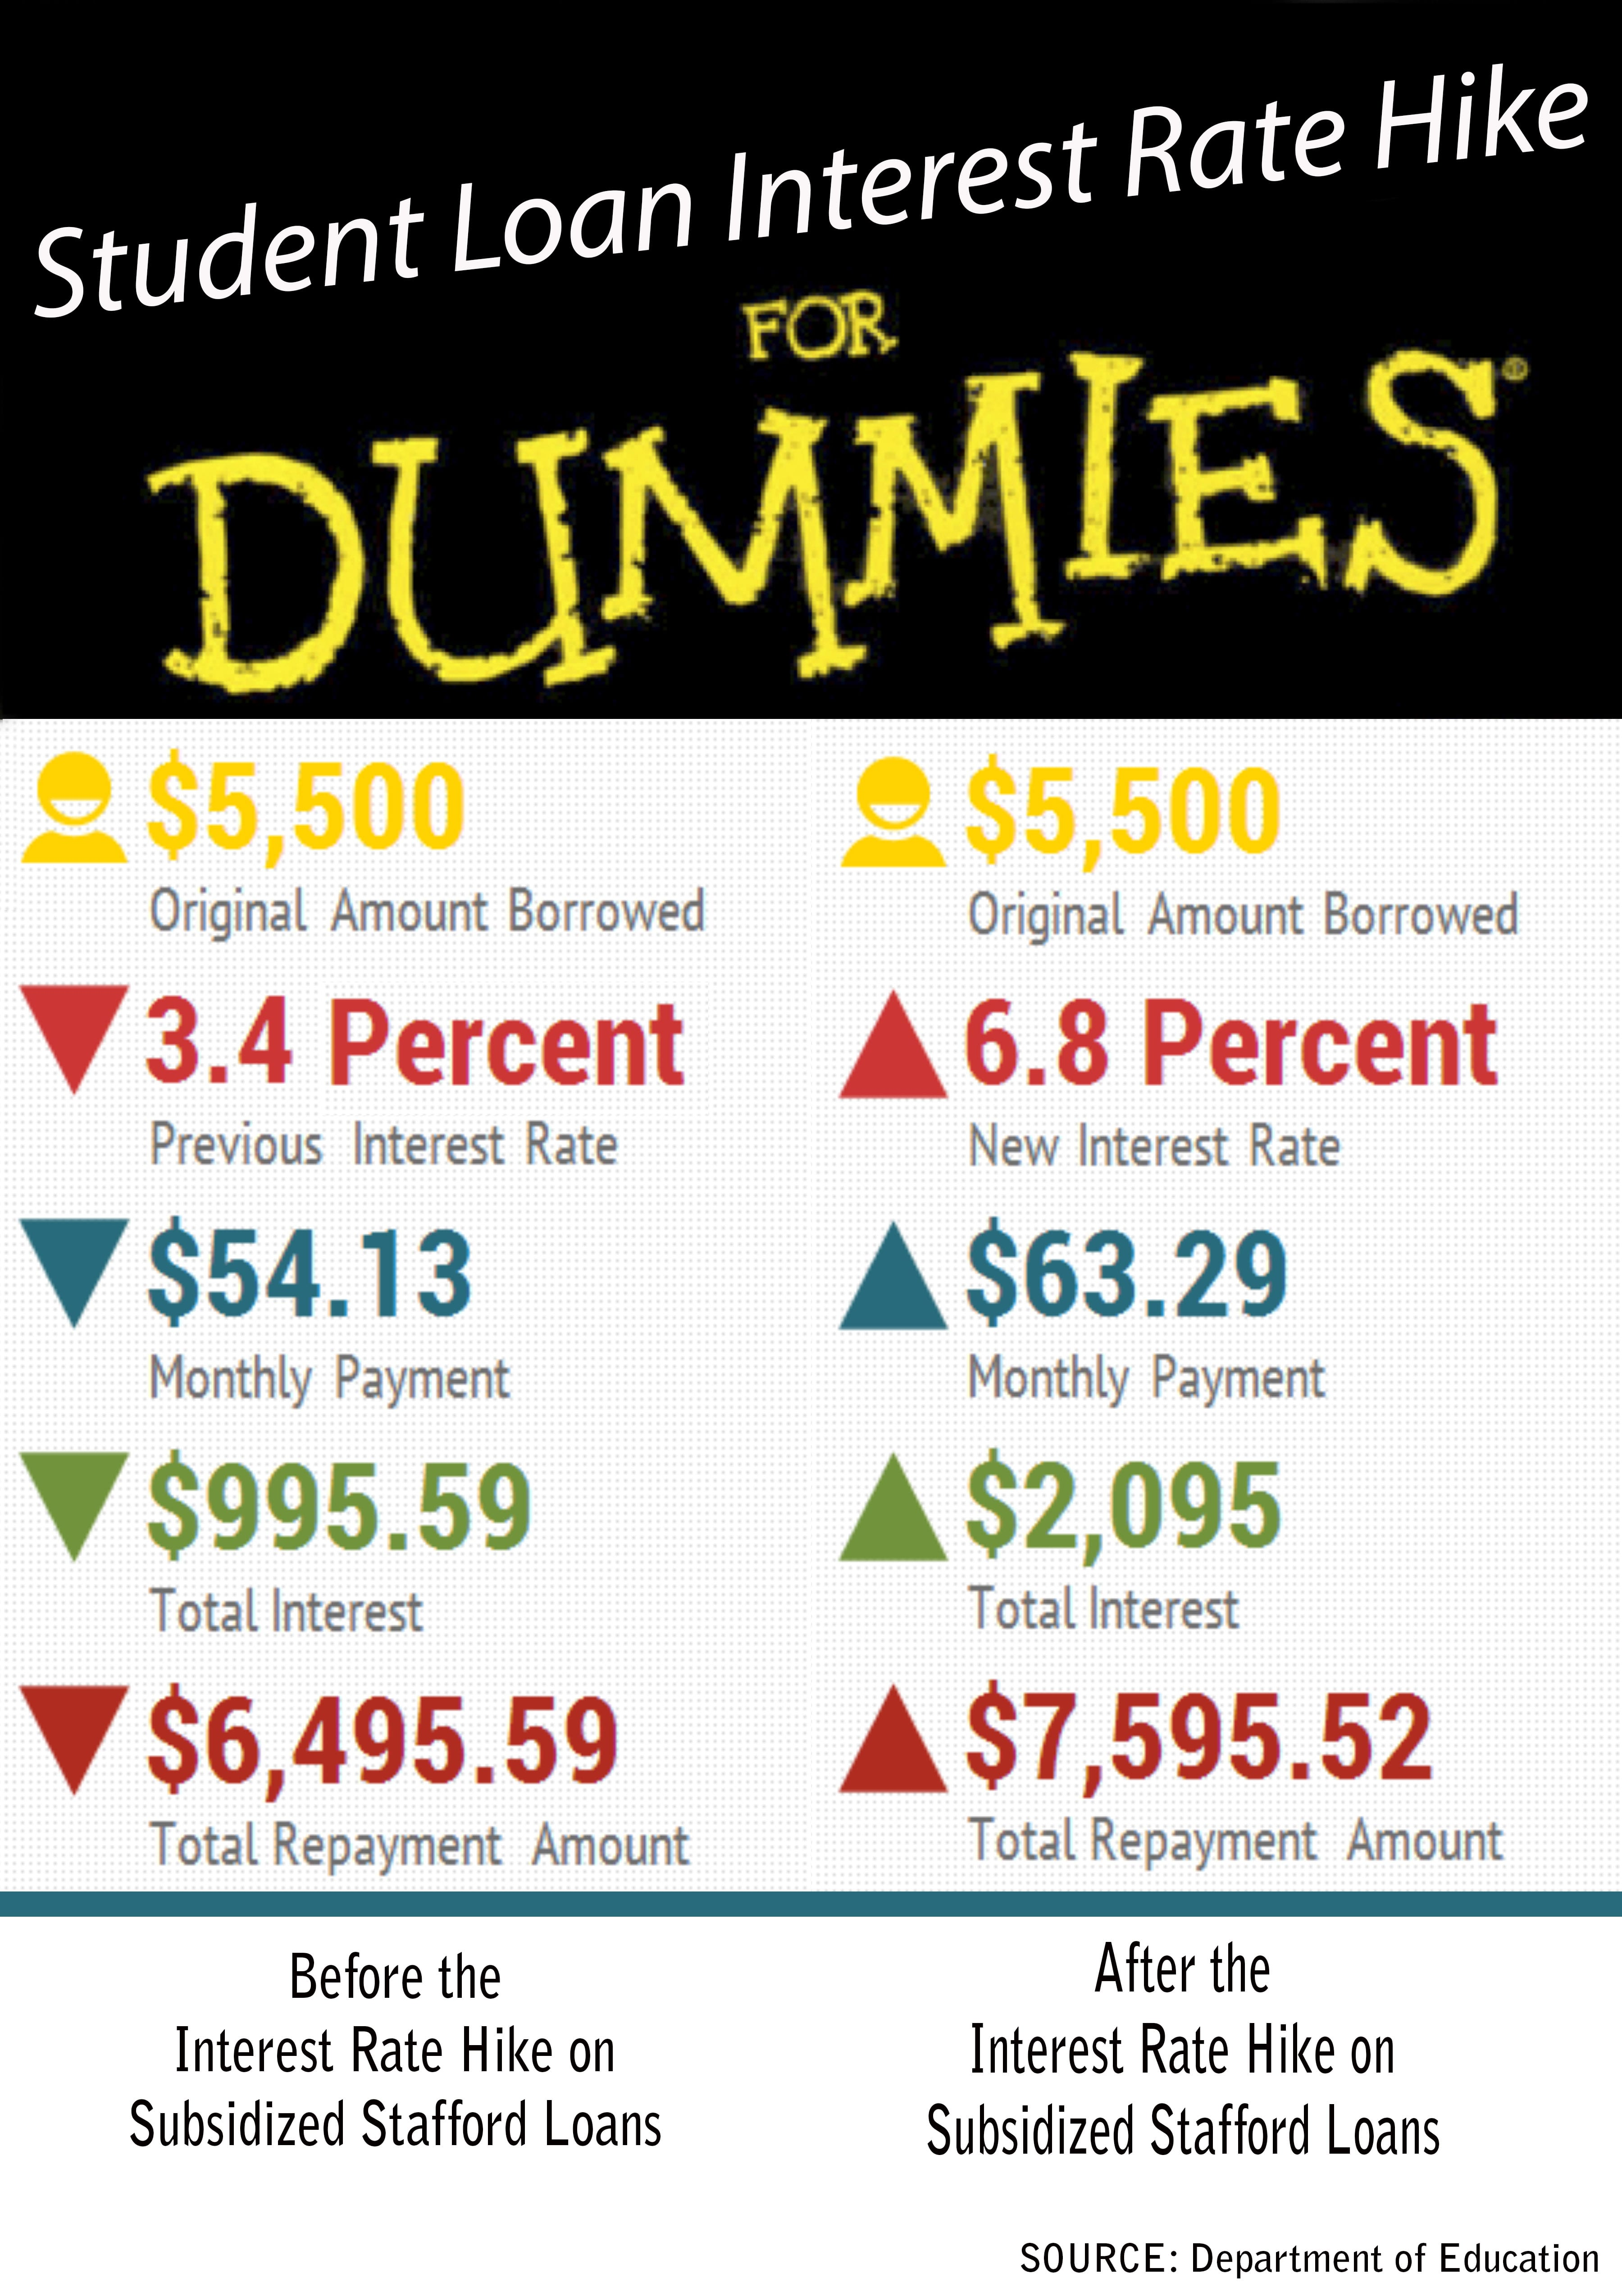 Check spelling or type a new query. Infographic Explaining Student Loan Interest Hike for Dummies